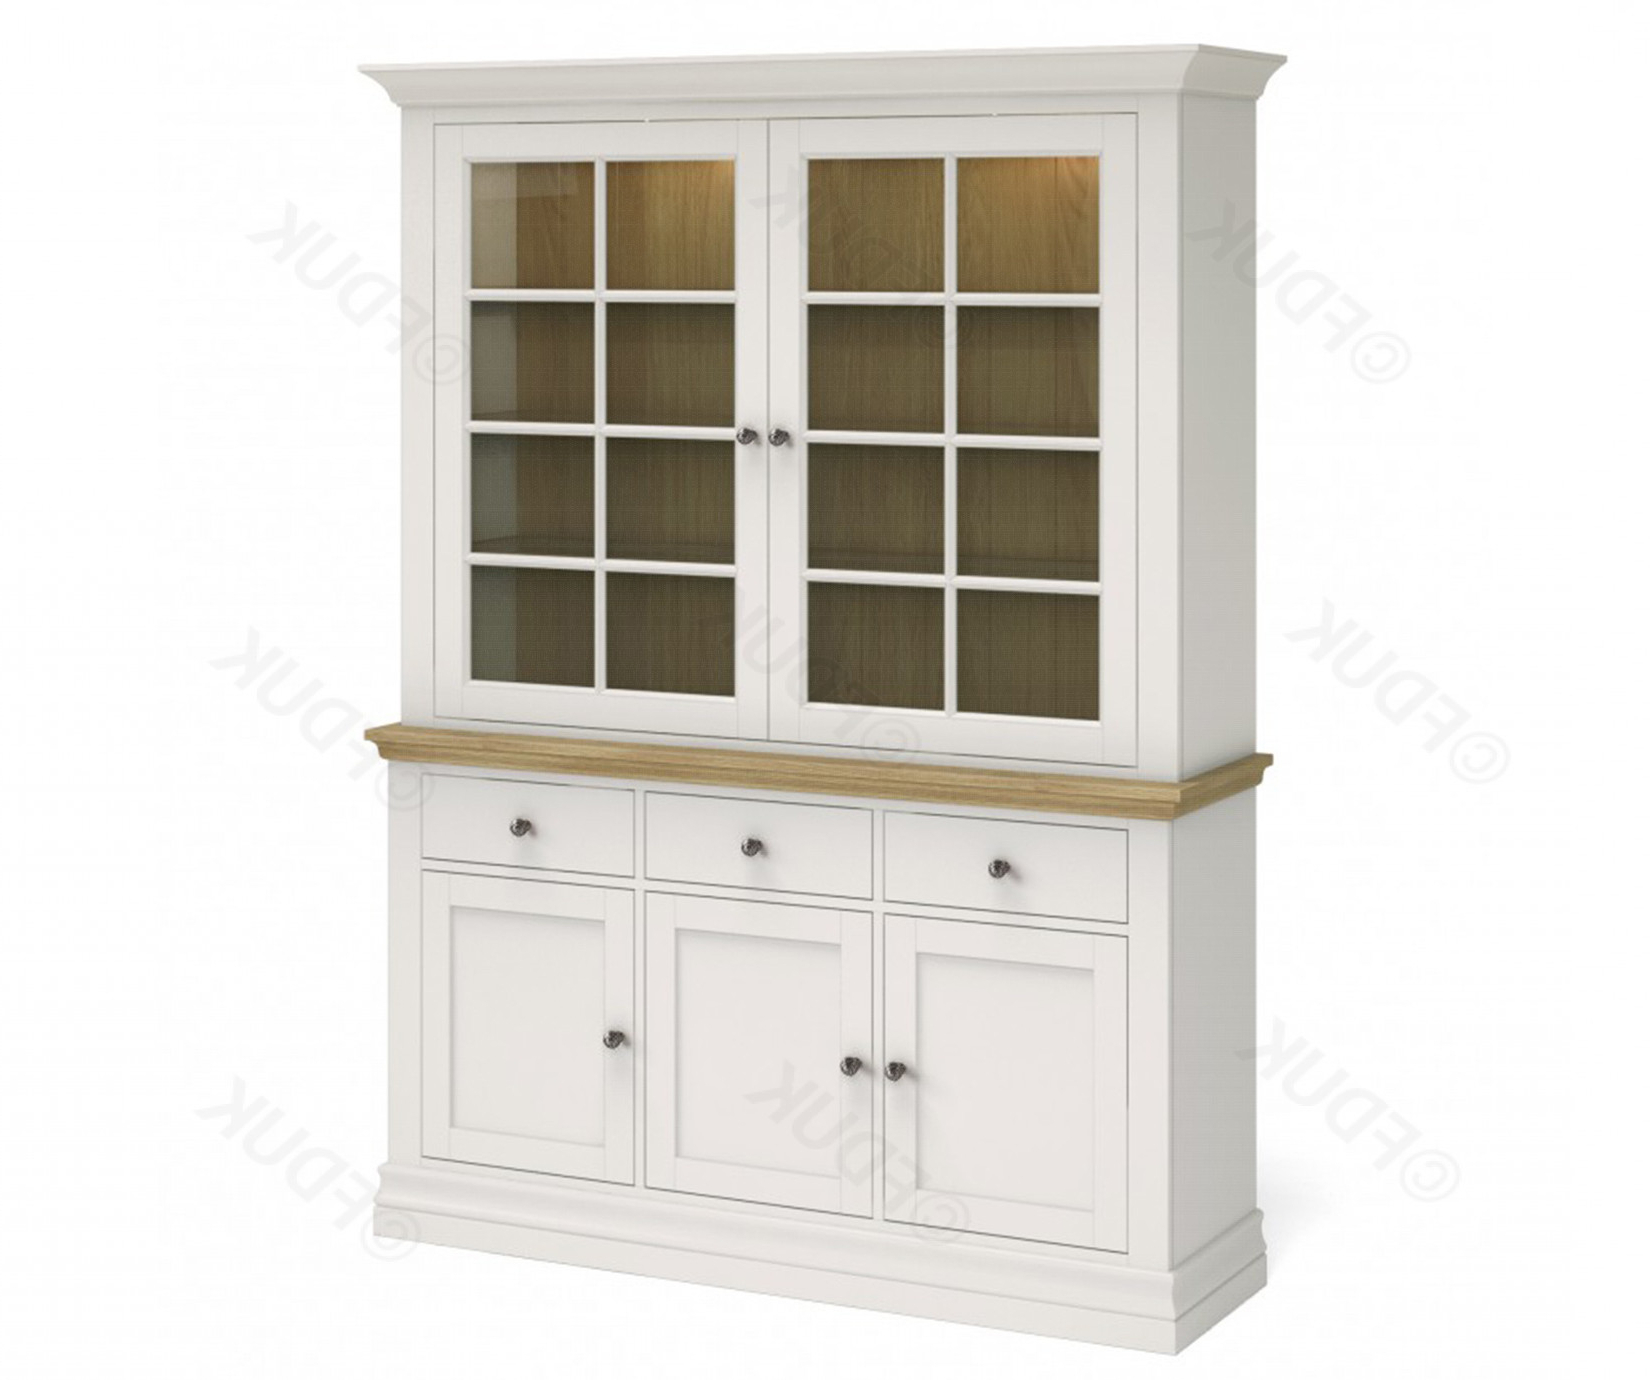 Corndell Annecy Large Sideboard With Dresser Top Fduk Best Price Guarantee We Will Beat Our Competitors Price! Give Our Sales Team A Call On 0116 235 With Regard To Annecy Sideboards (View 11 of 20)